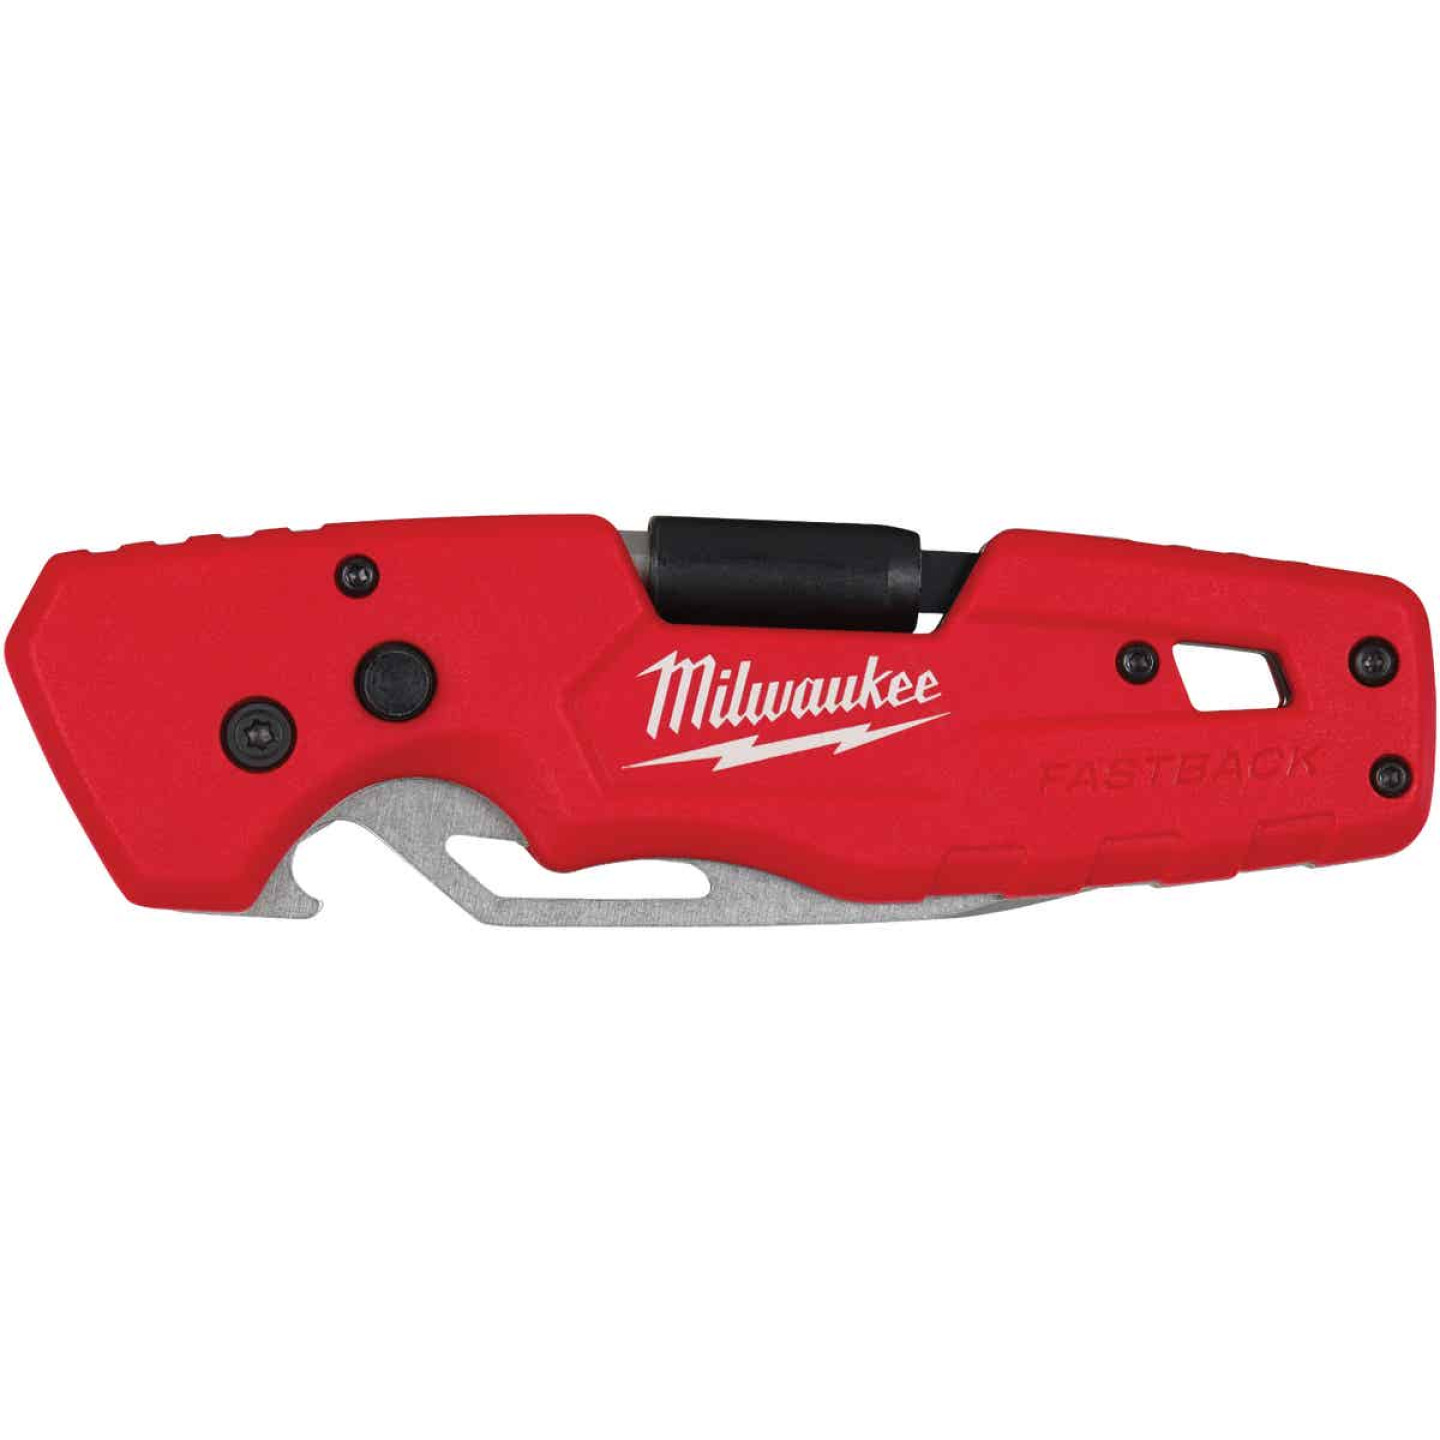 Milwaukee FASTBACK 3 In. 5-In-1 Folding Knife Image 2